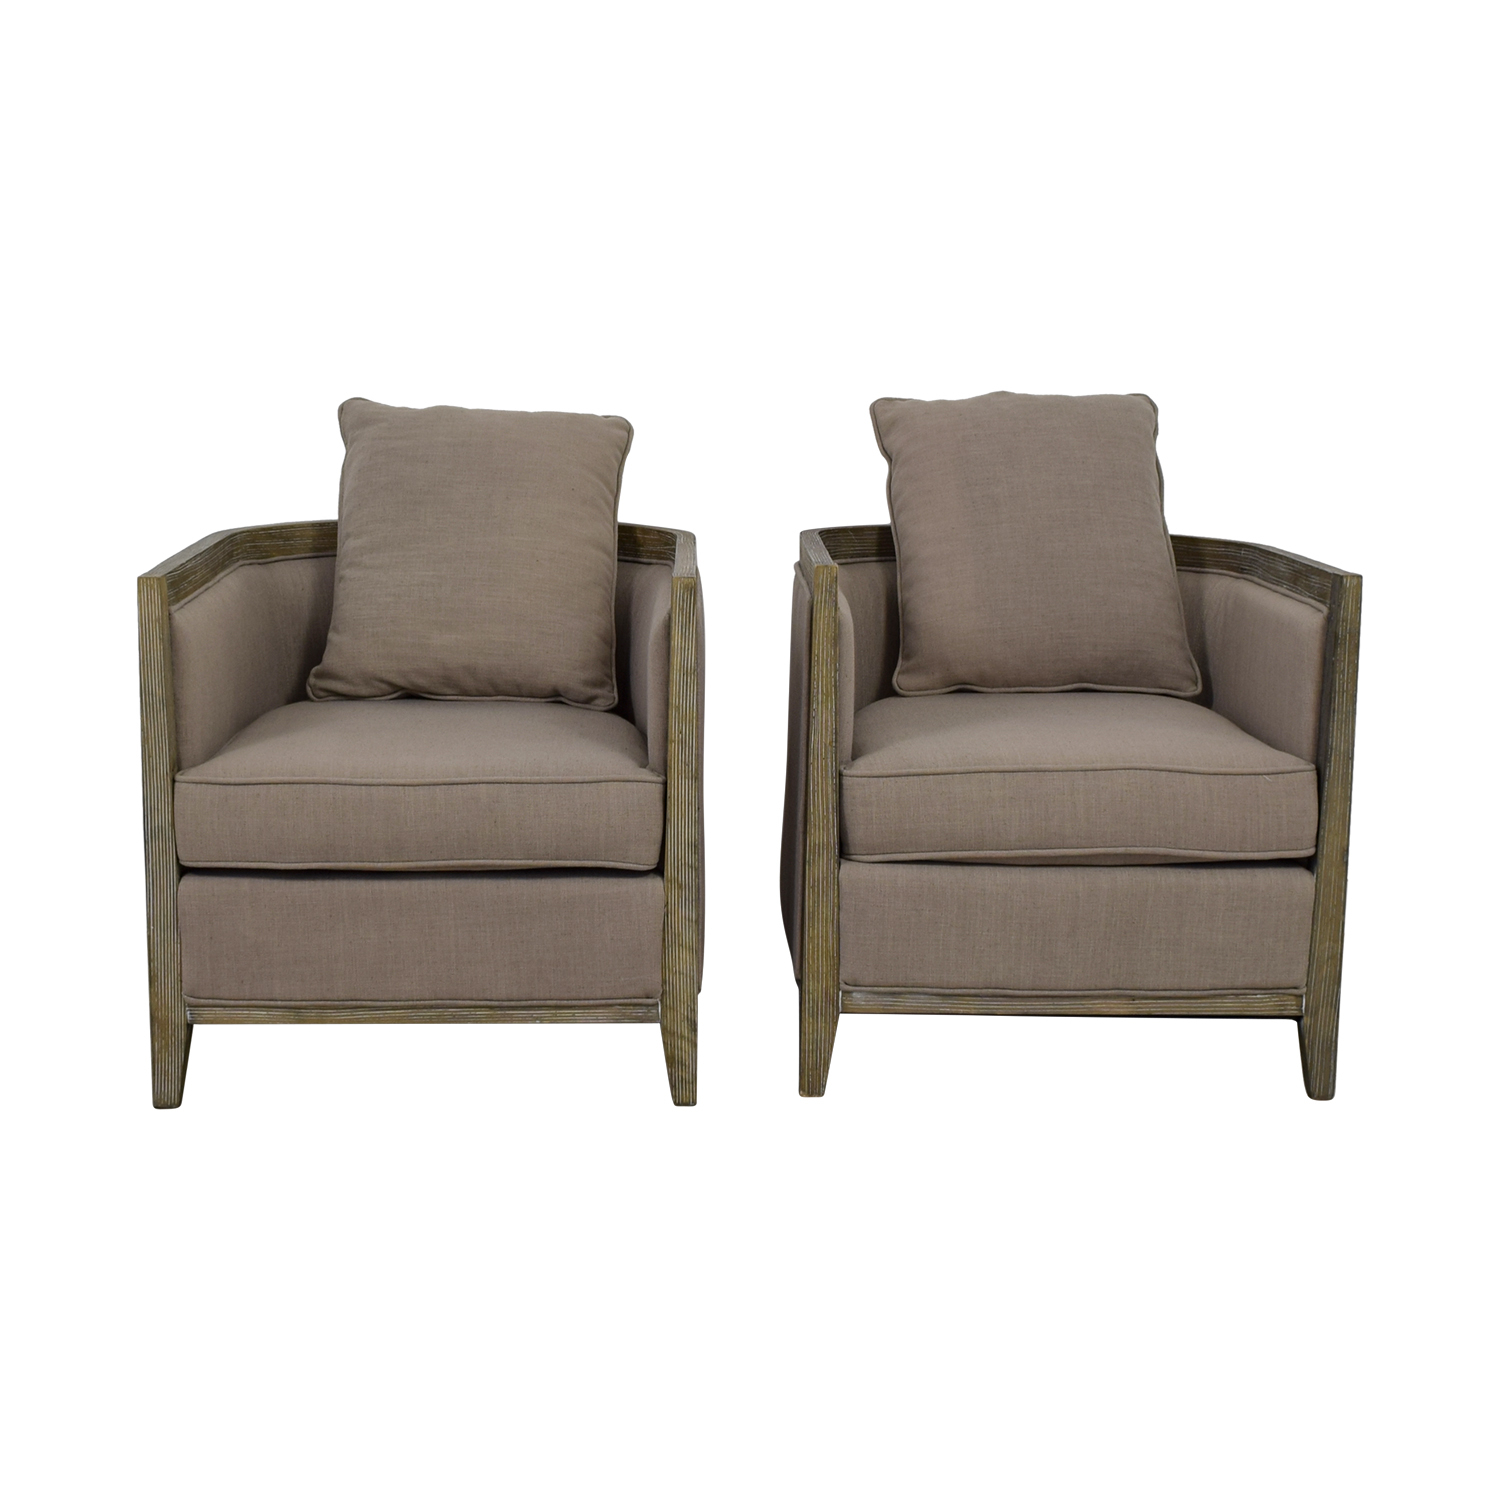 75% Off - Carbon Loft Carbon Loft Tull Beige Linen Lounge Accent within Loft Black Swivel Accent Chairs